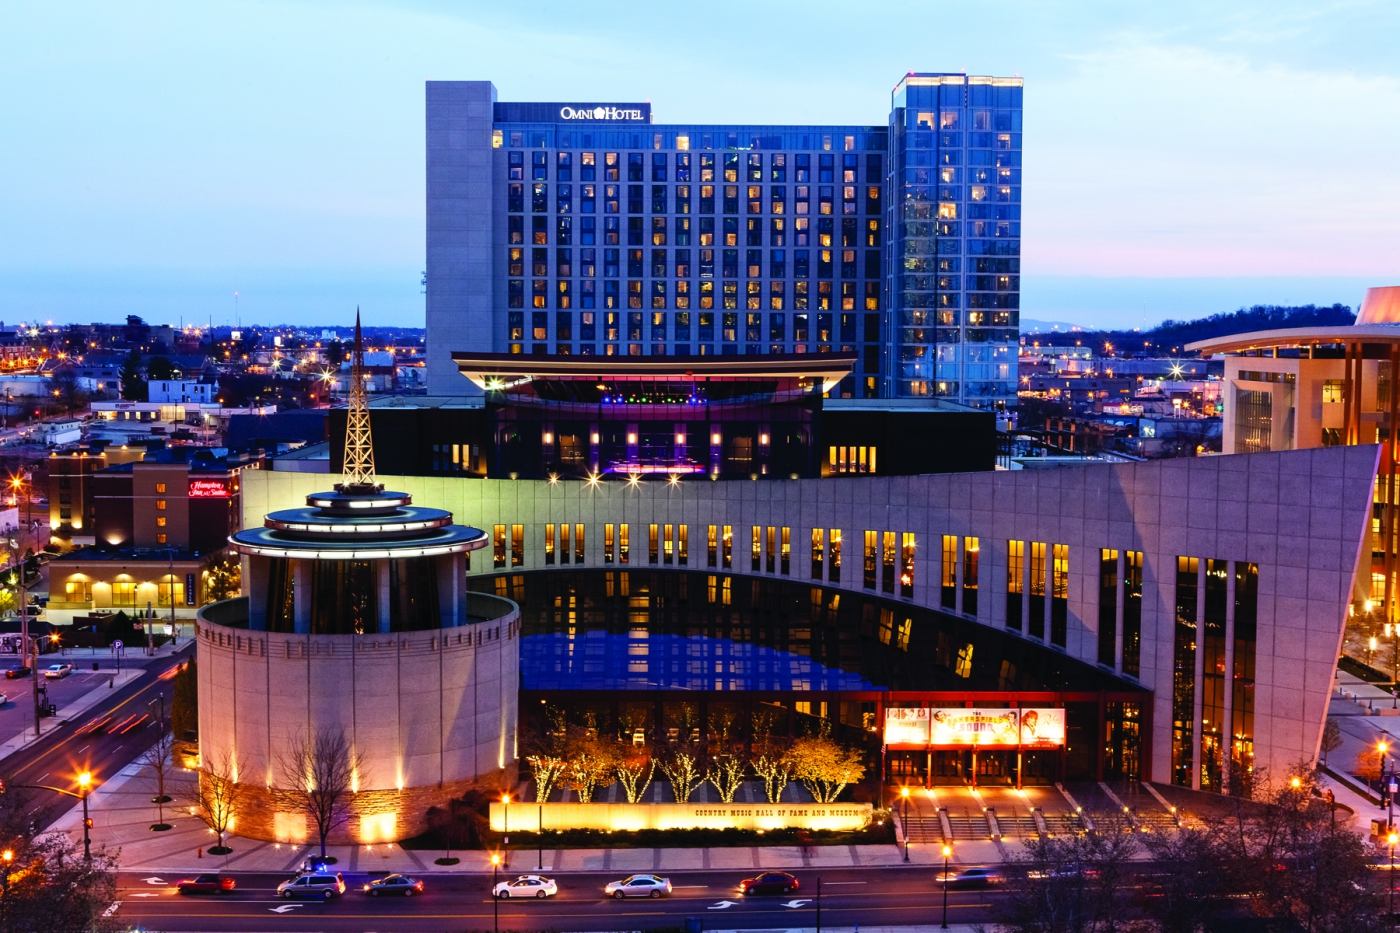 The incredible Country Music Hall of Fame and Omni Hotel.